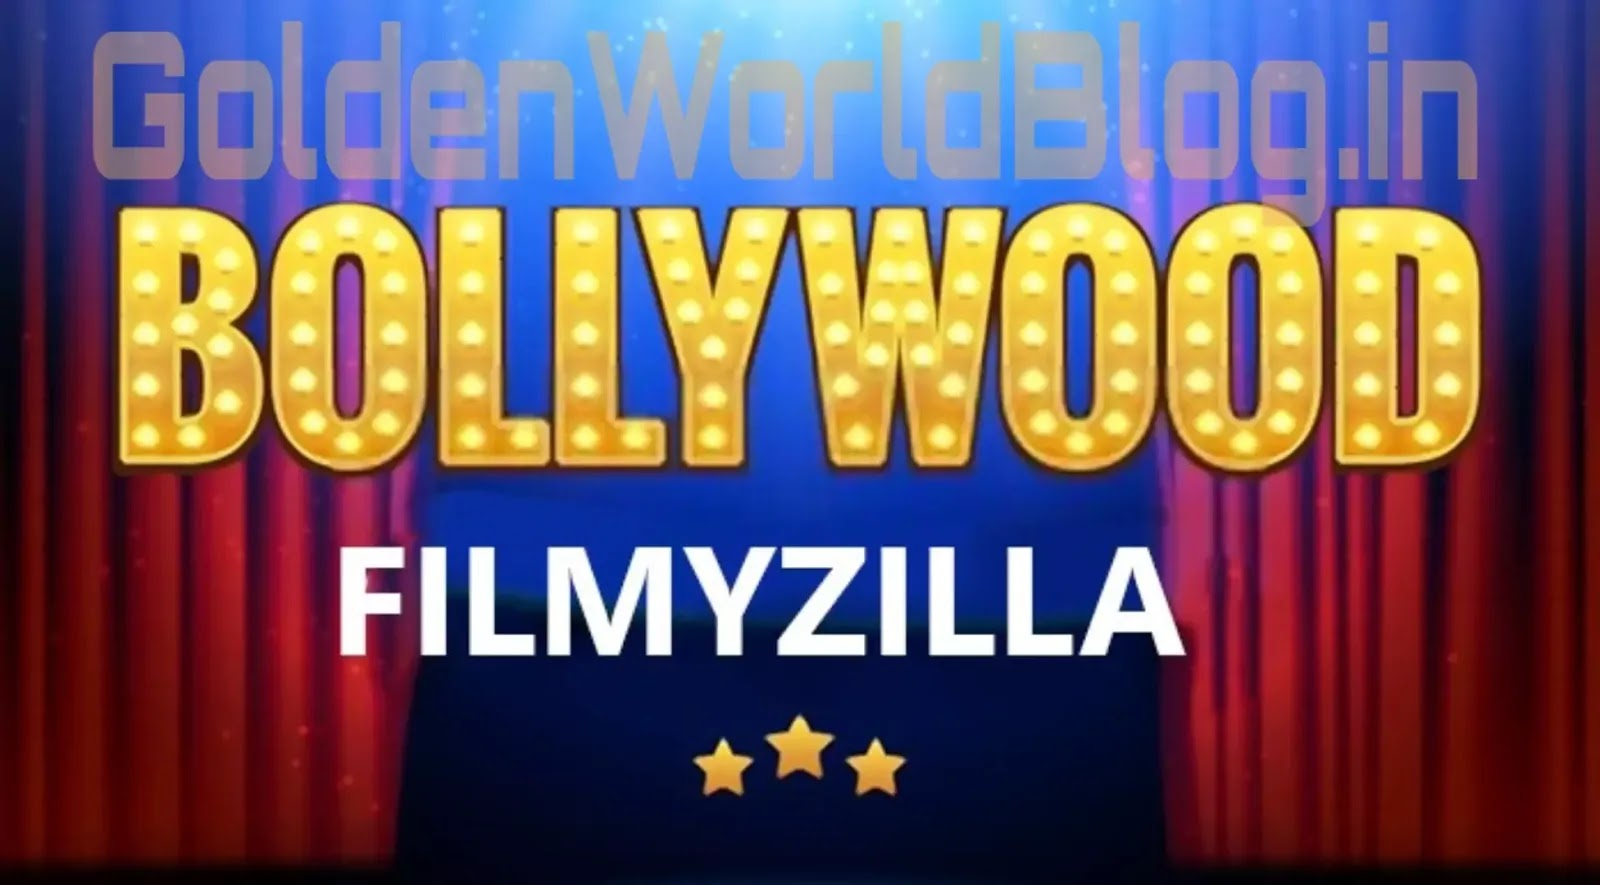 Bollywood Fillmyzilla2020